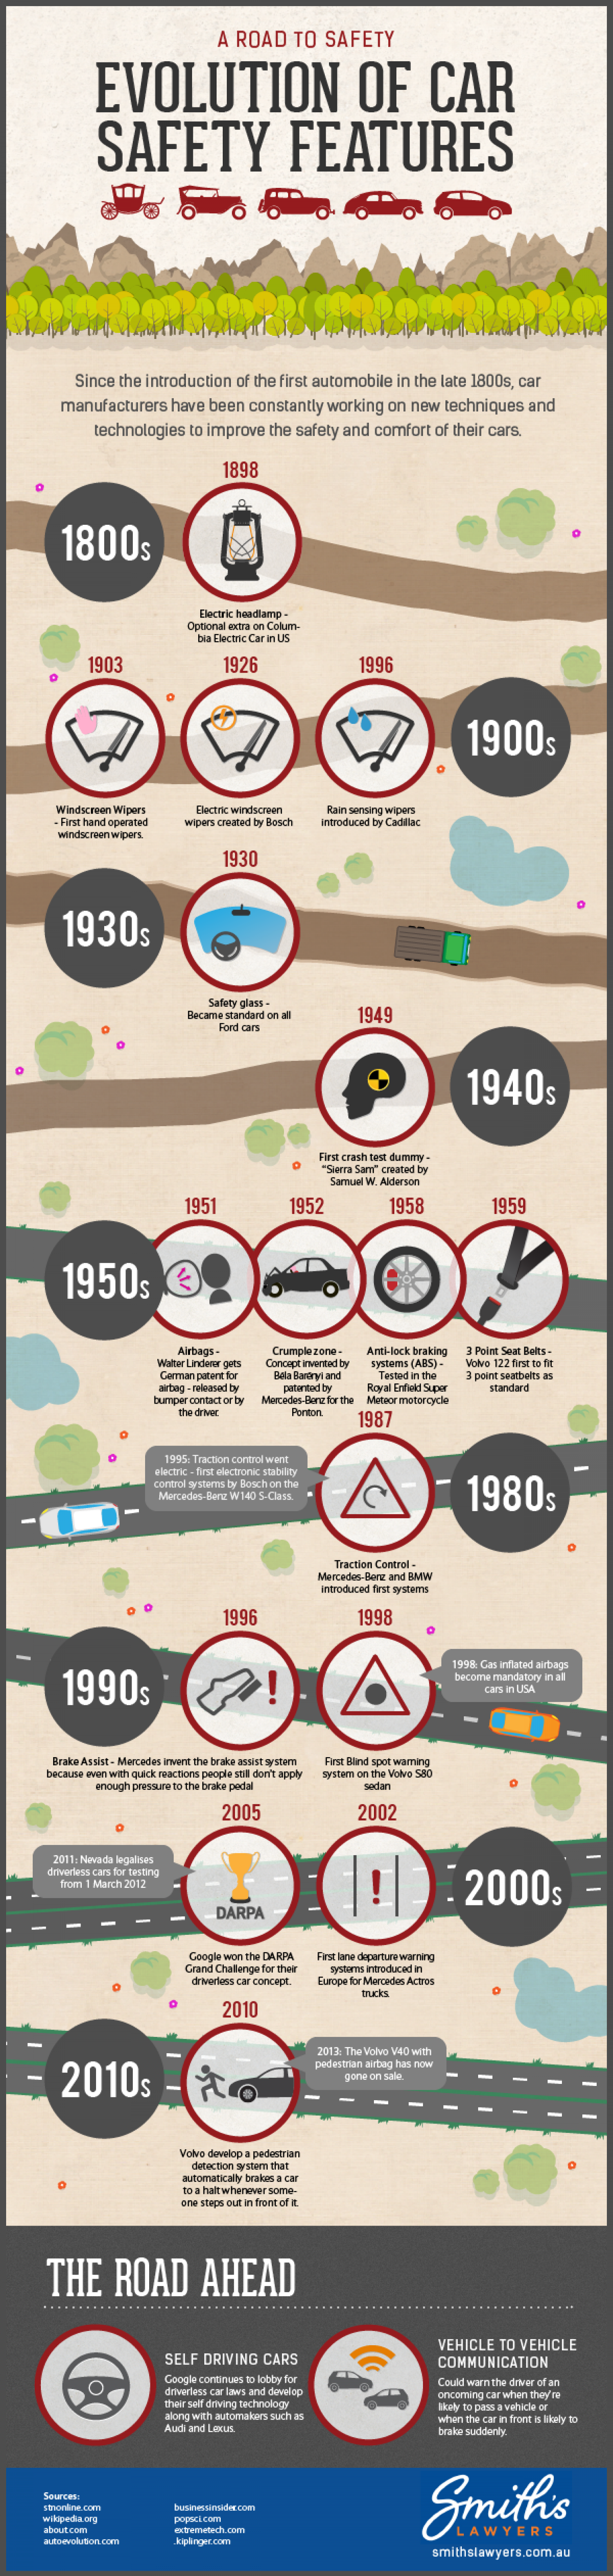 120 Years of Car Safety Evolution Infographic